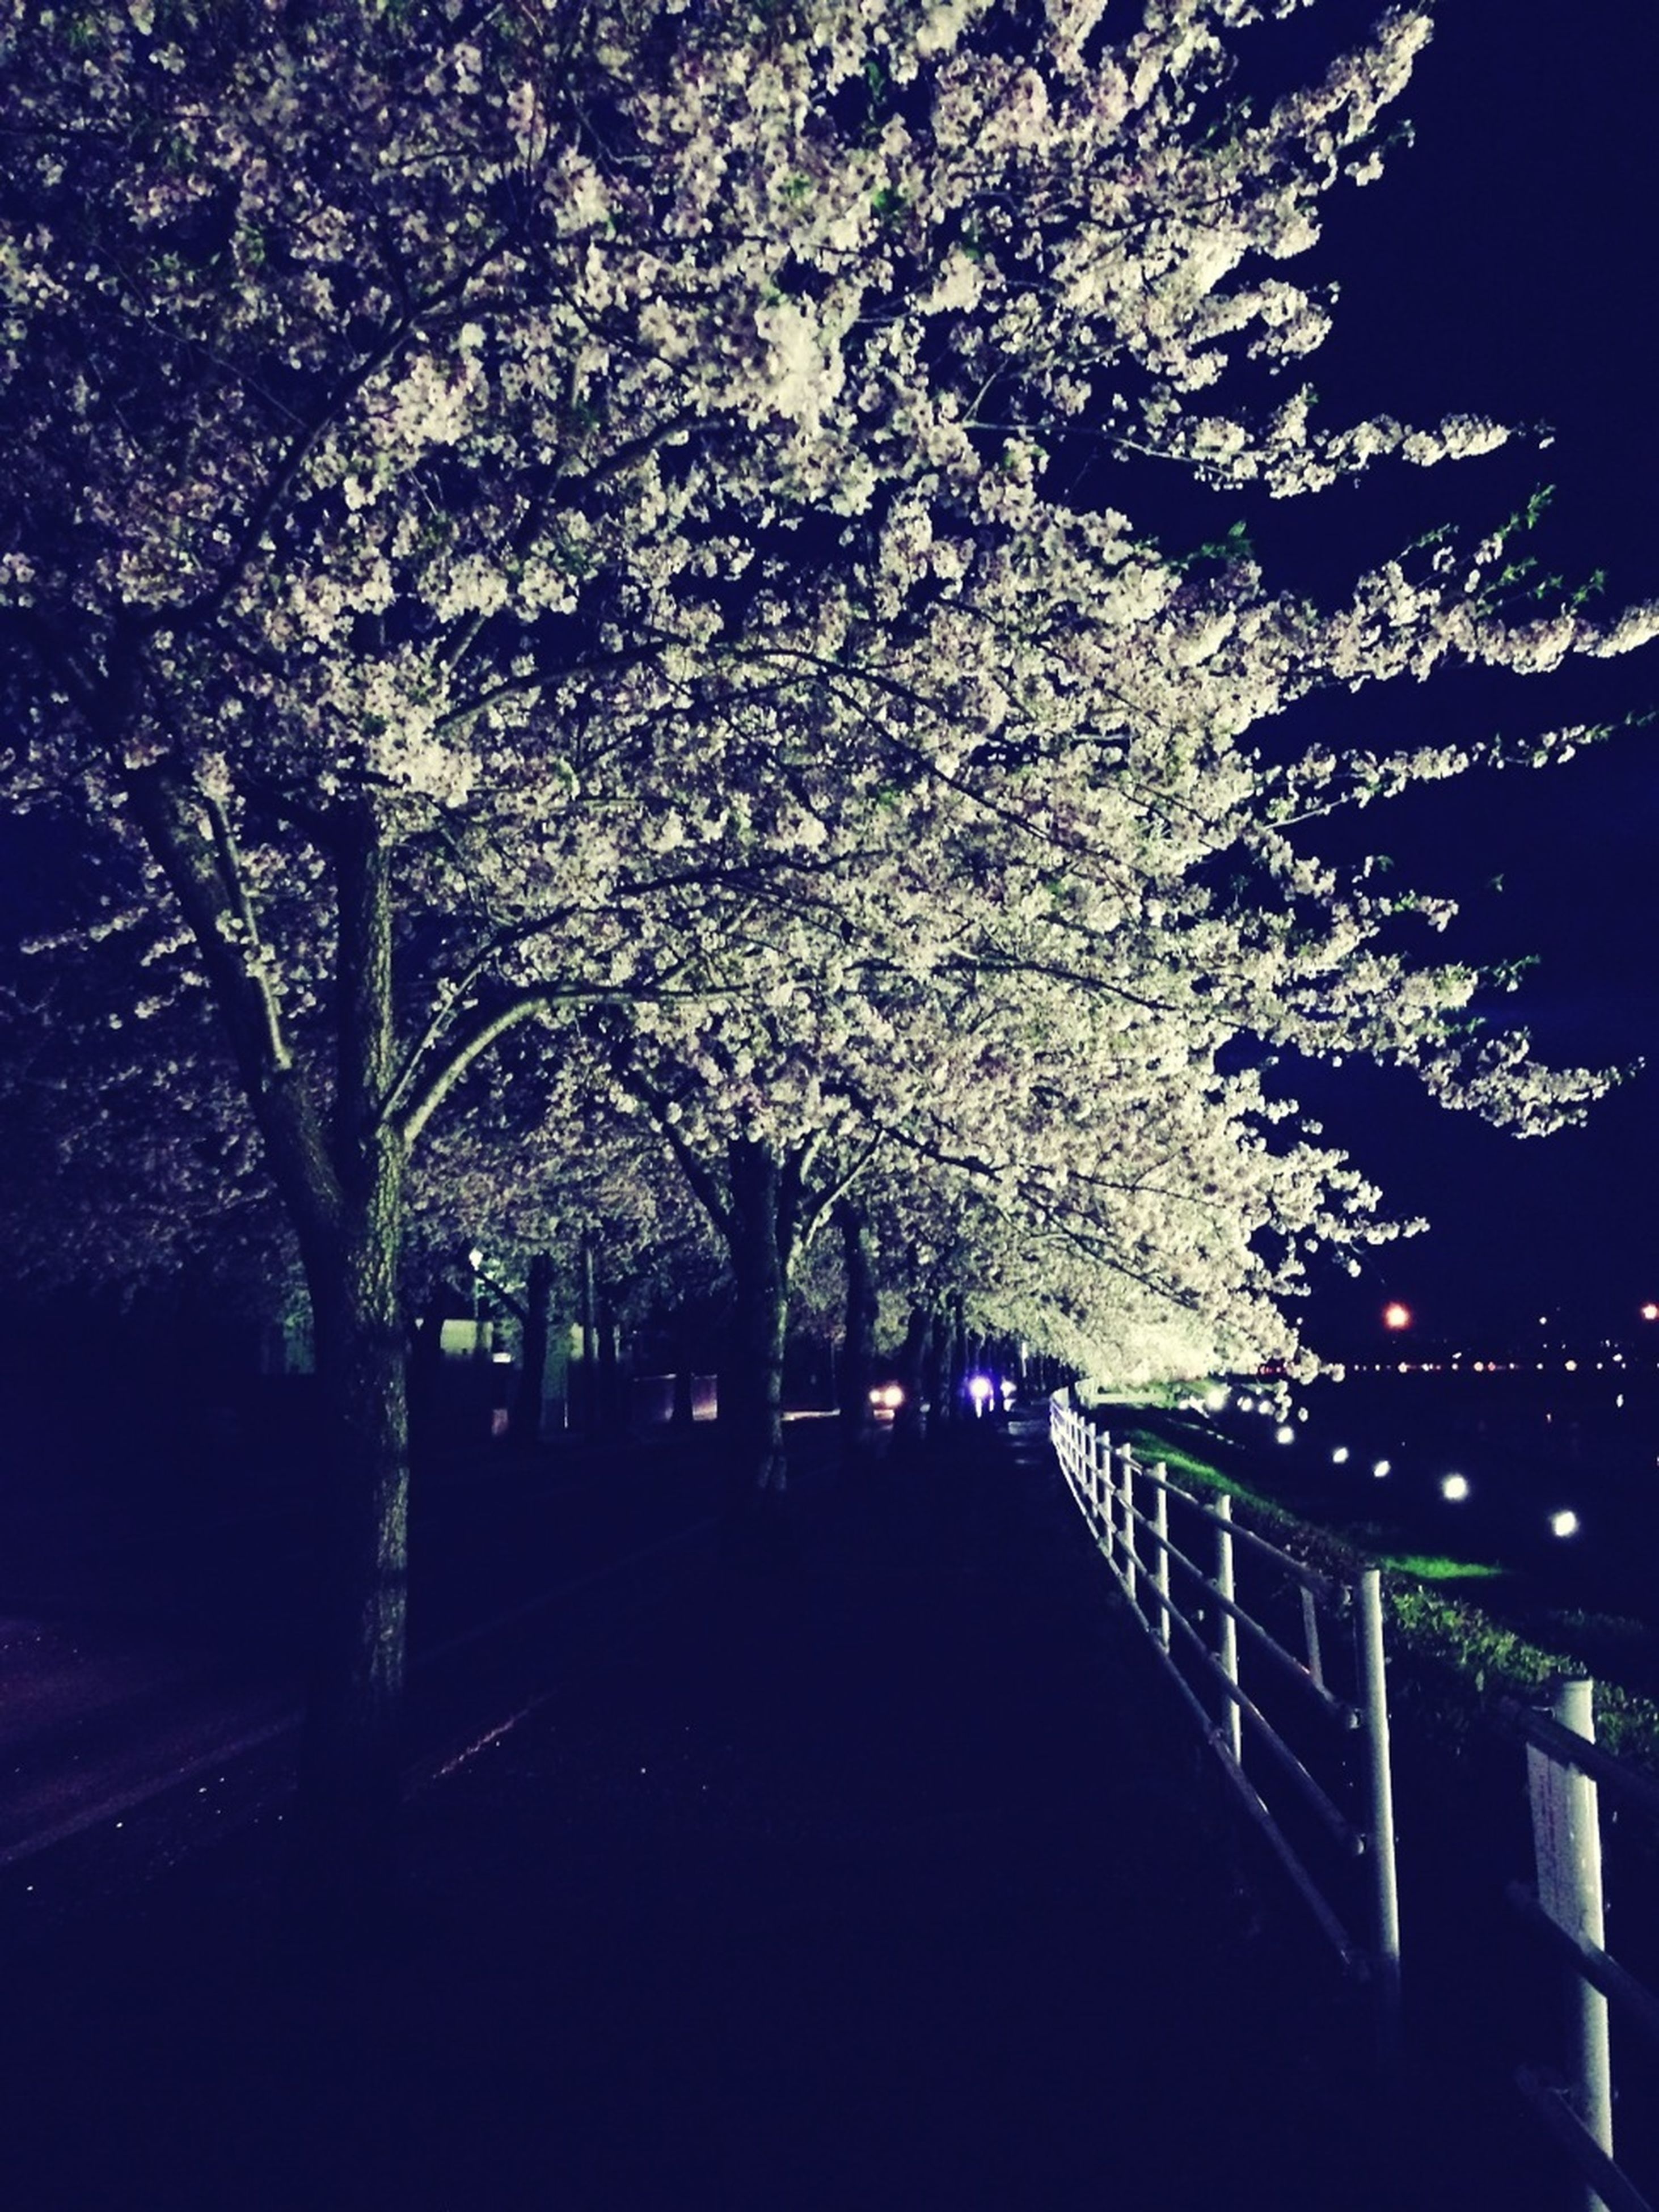 night, tree, illuminated, branch, built structure, lighting equipment, railing, growth, clear sky, architecture, street light, nature, sky, bare tree, outdoors, building exterior, low angle view, tranquility, beauty in nature, park - man made space